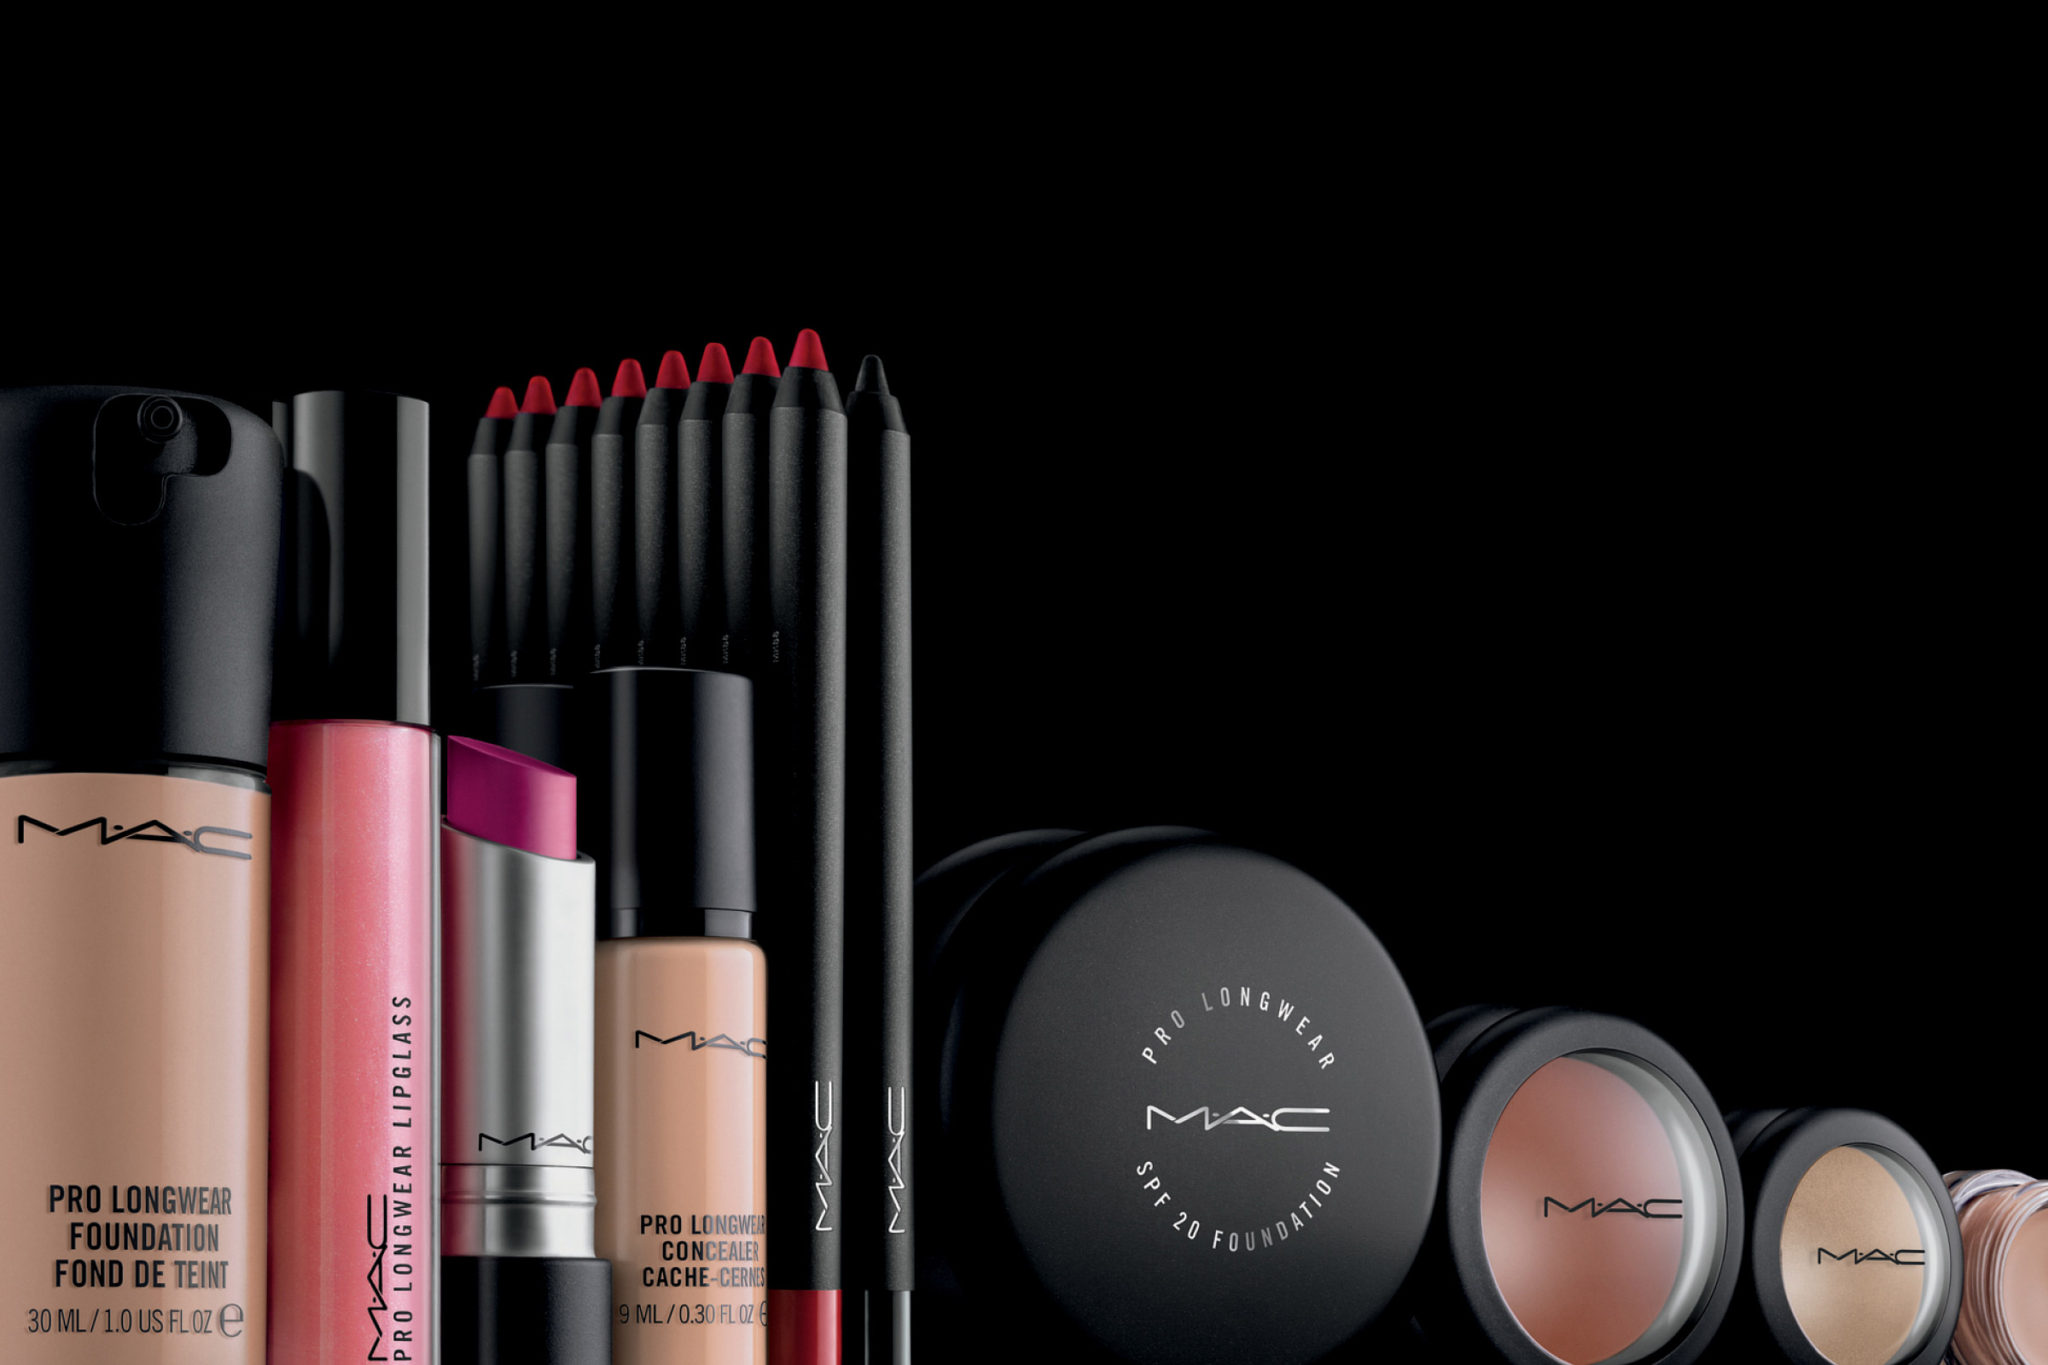 Top 7 MAC Makeup Products That Every Girl Should Have ...